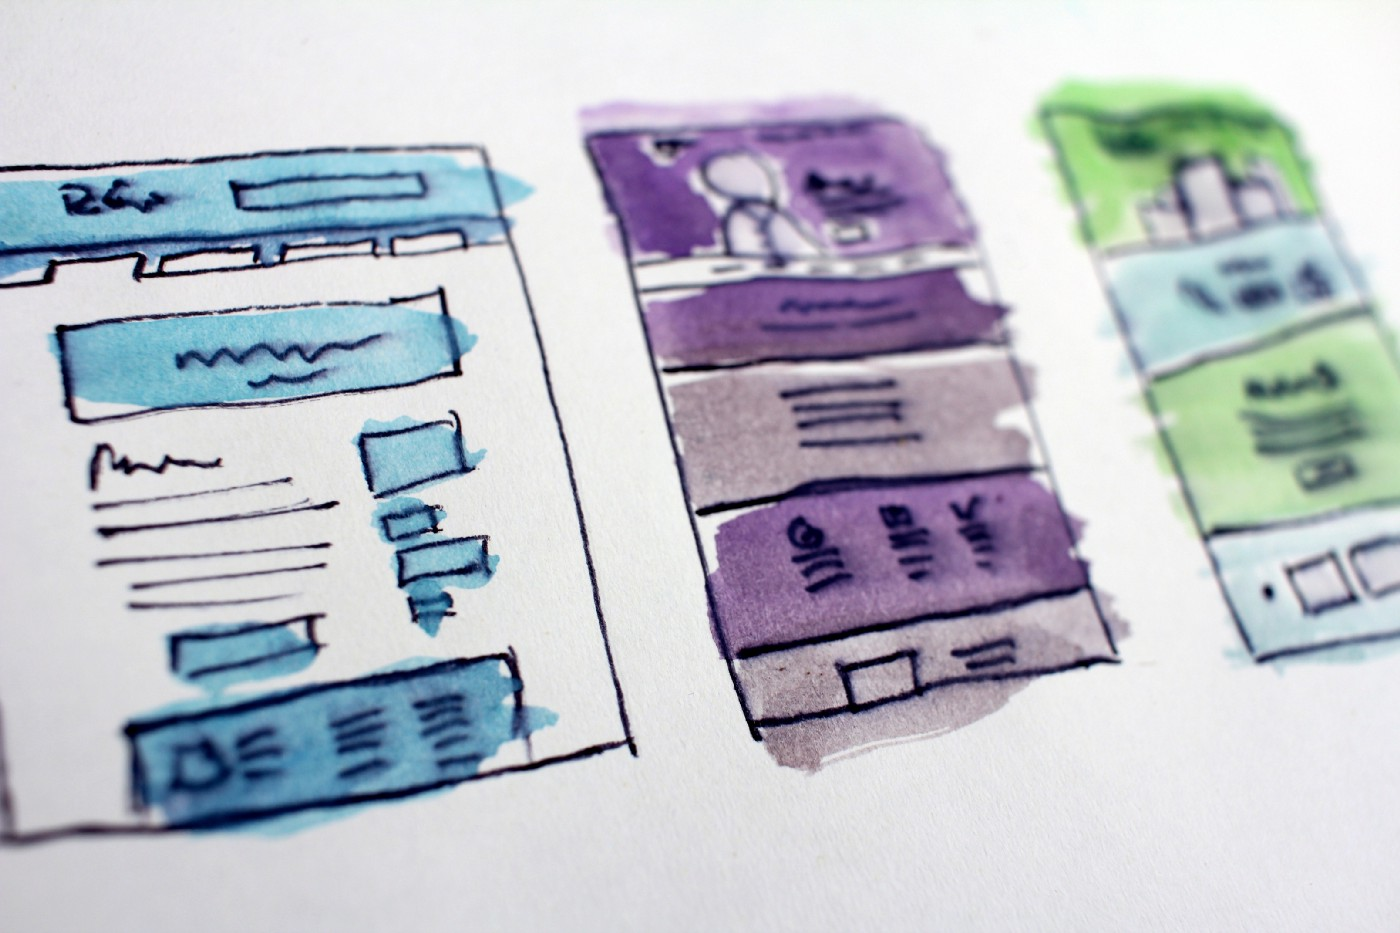 A UX designer's sketch of three different screens for apps or websites